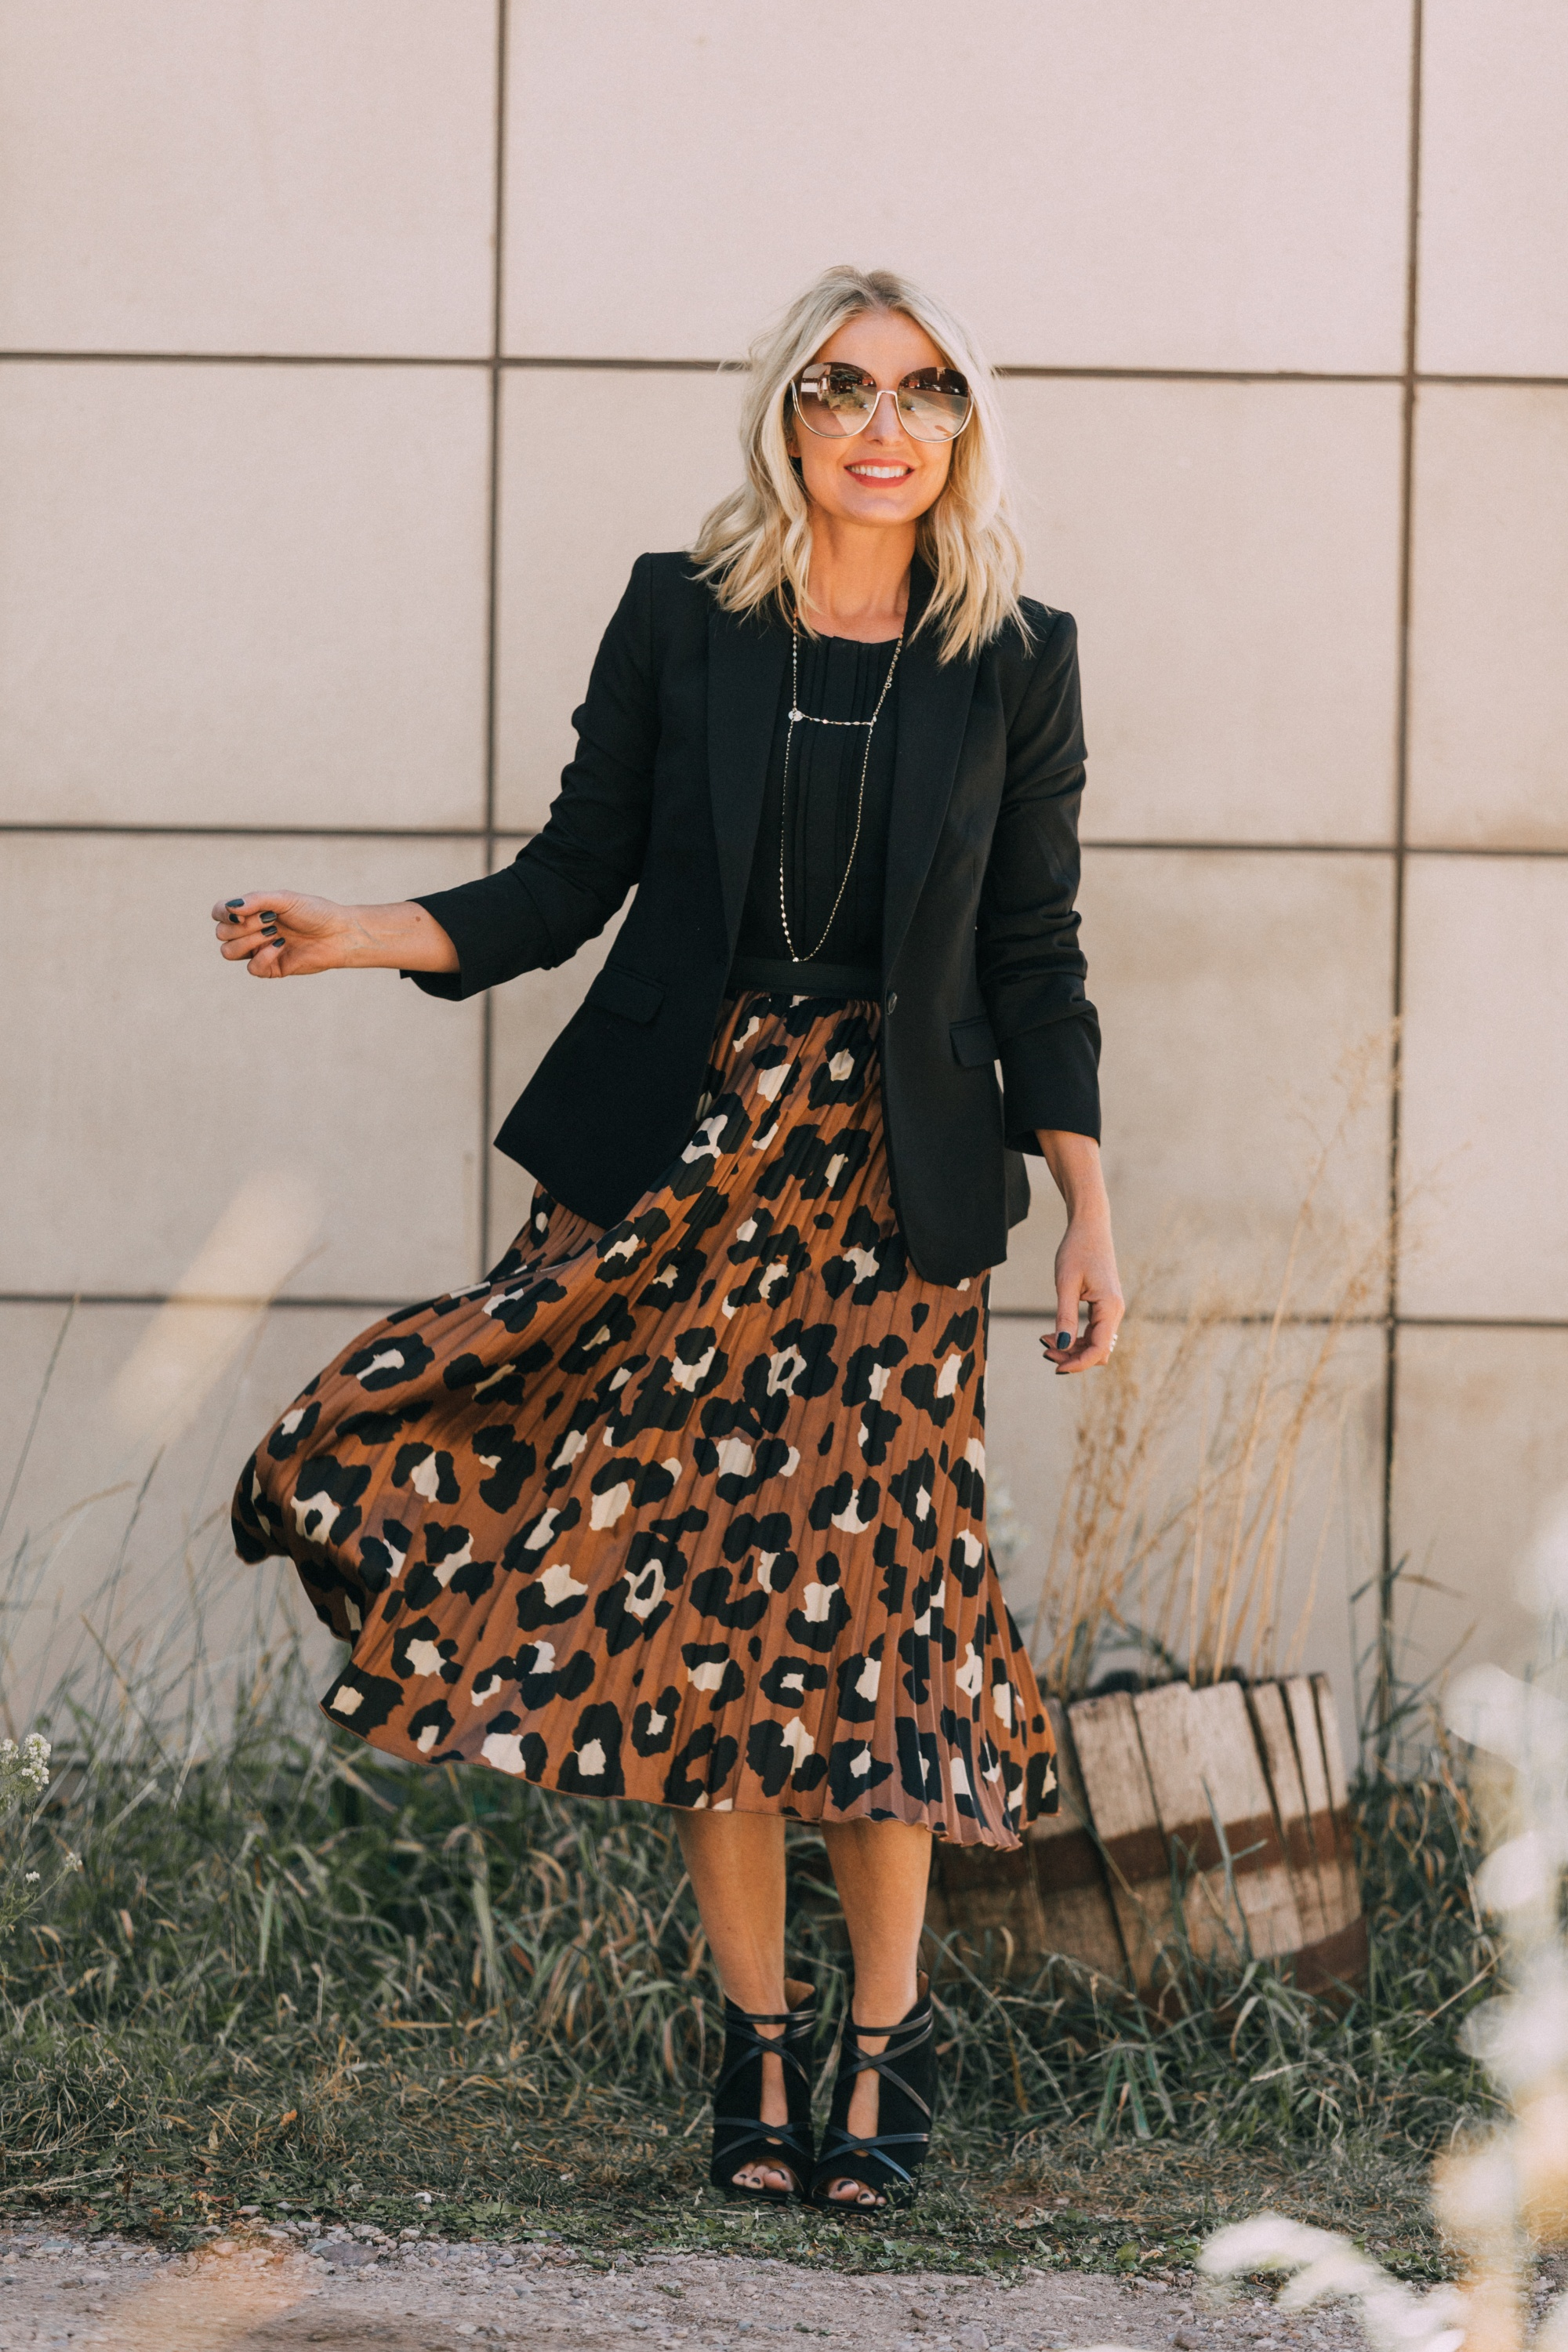 Affordable Blazers fashion blogger outfit with leopard print midi skirt workwear